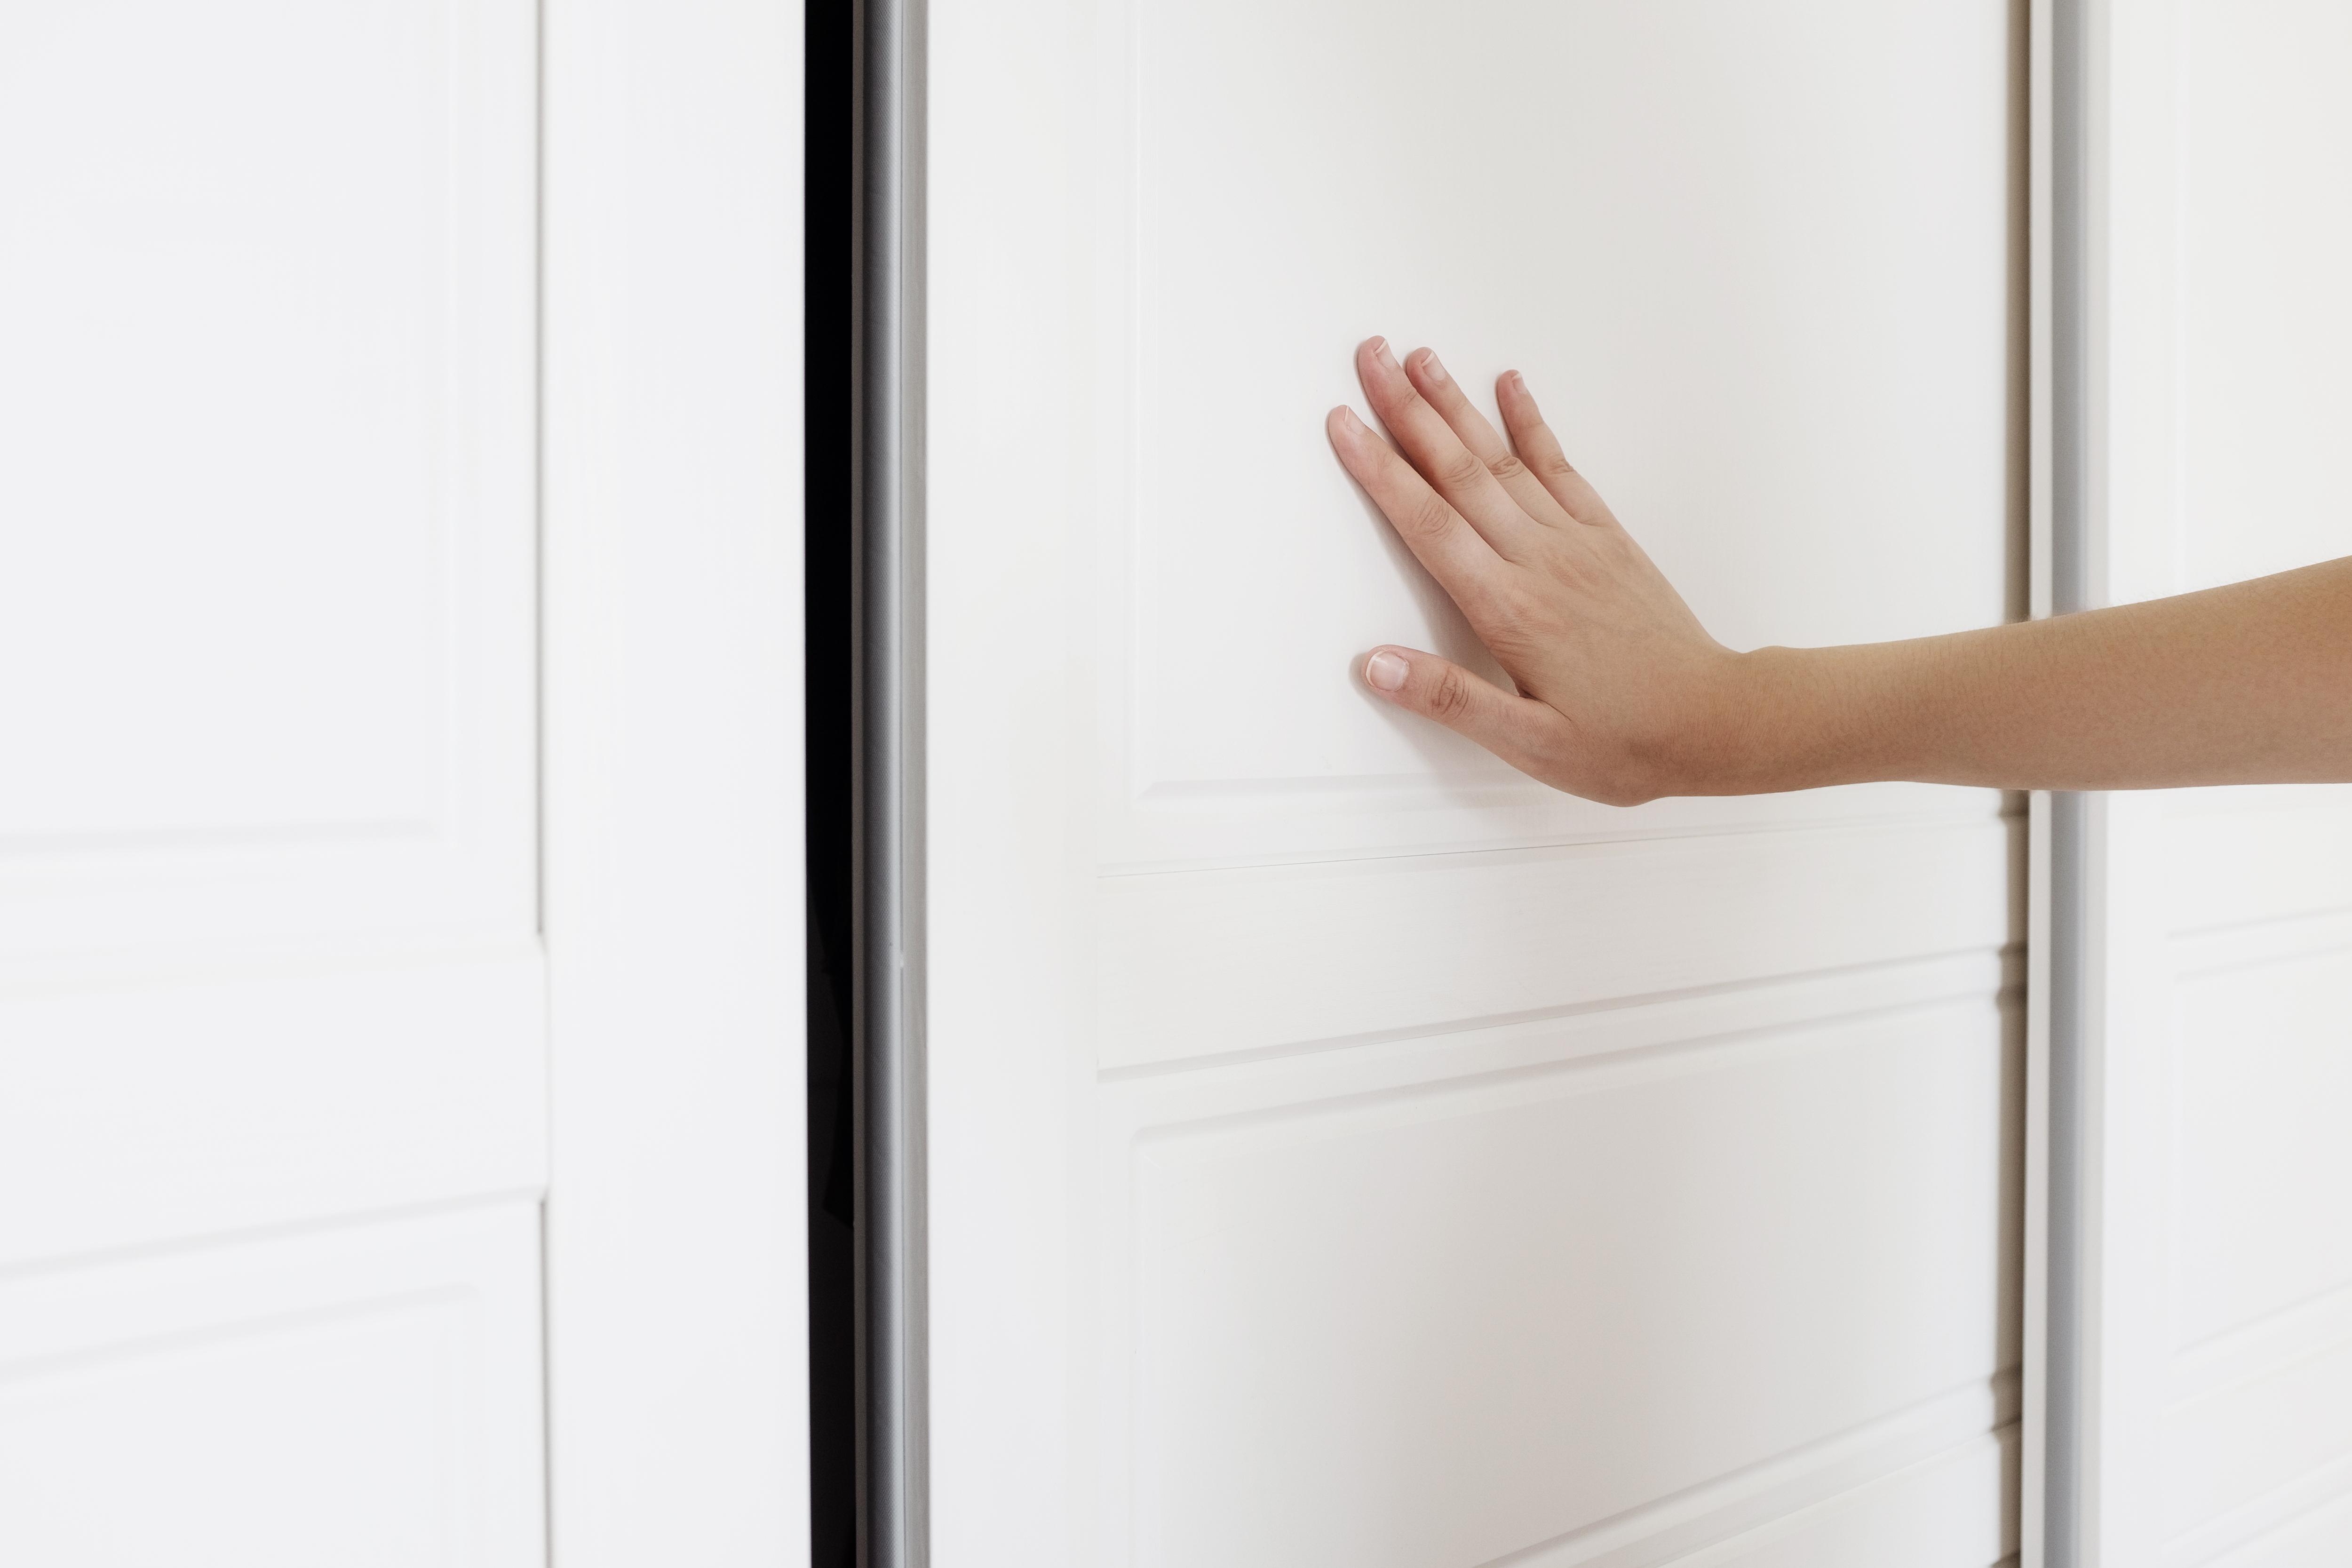 How to Change the Pressure on a Door Closer | Home Guides